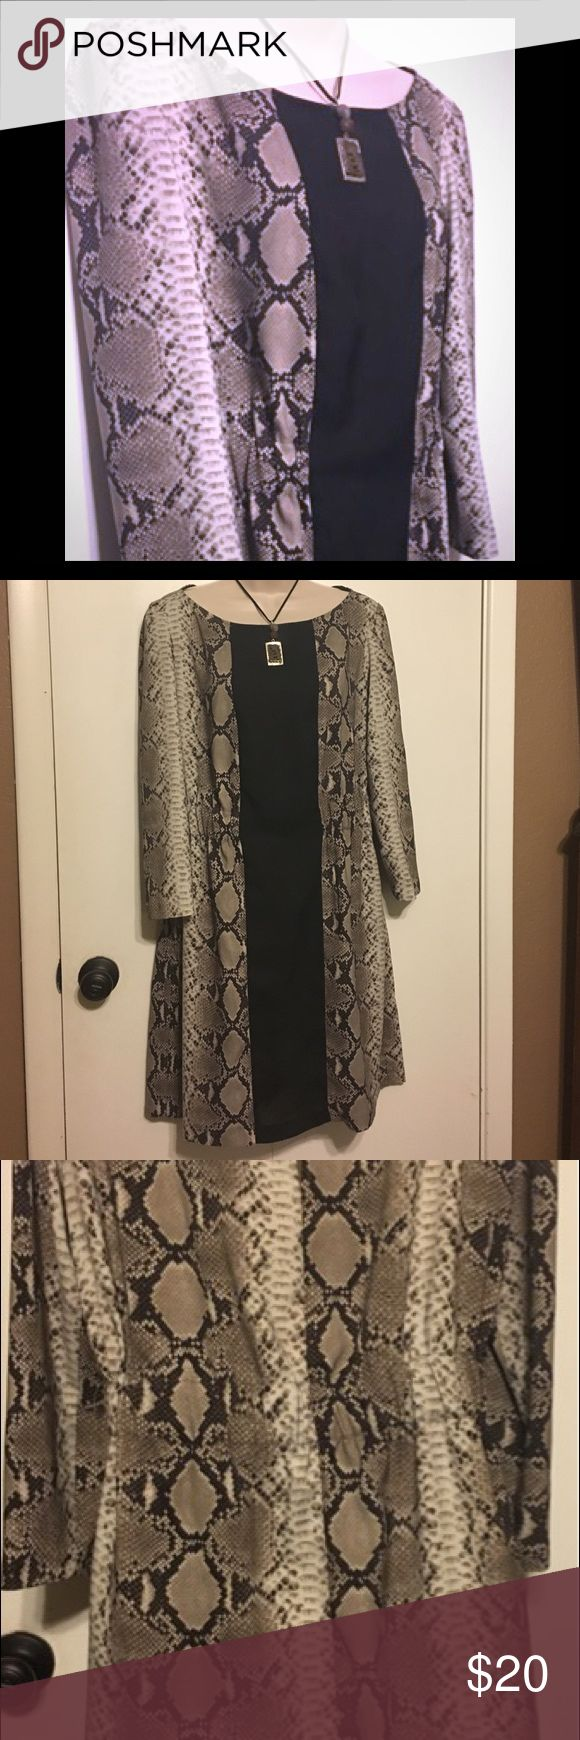 Zara Snake Print Dress MIDI dress features built in belting to add structure & definition. Panel of black justifies the aggressive snake print while the back of dress is all 🐍 without interruption.  In great like new condition. Re- Posh. Size: euro large, so a medium. 😋 Zara Dresses Midi